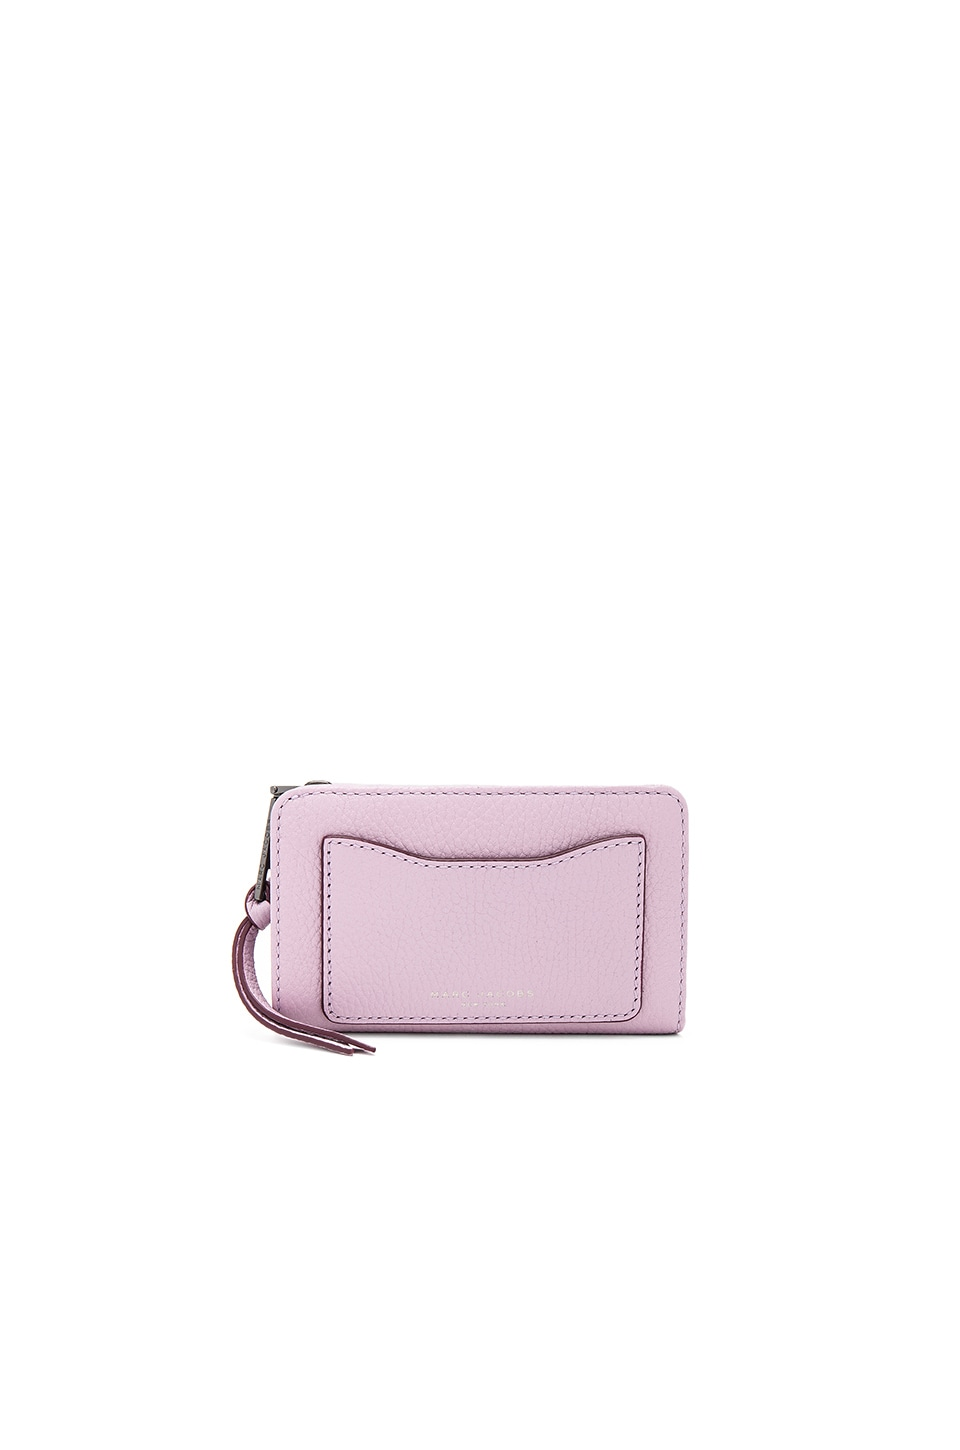 Recruit Compact Wallet by Marc Jacobs